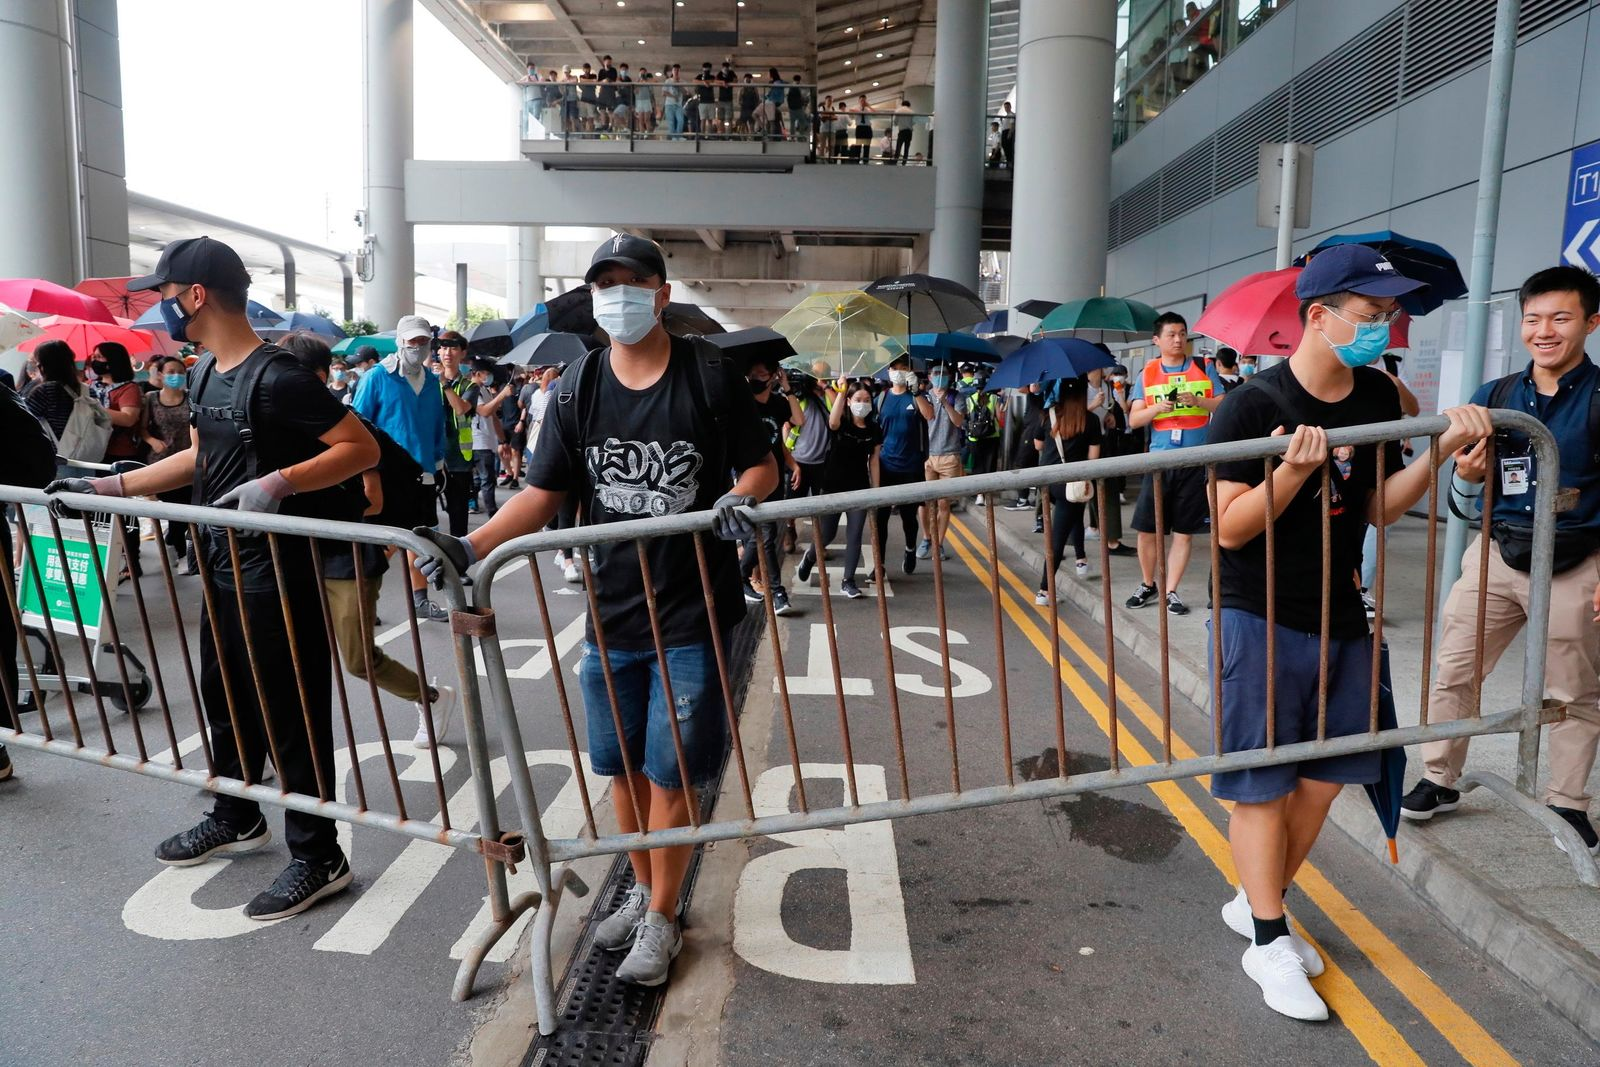 Pro-democracy protestors gather outside the airport in, Hong Kong, Sunday, Sept.1, 2019. (AP Photo/Kin Cheung)